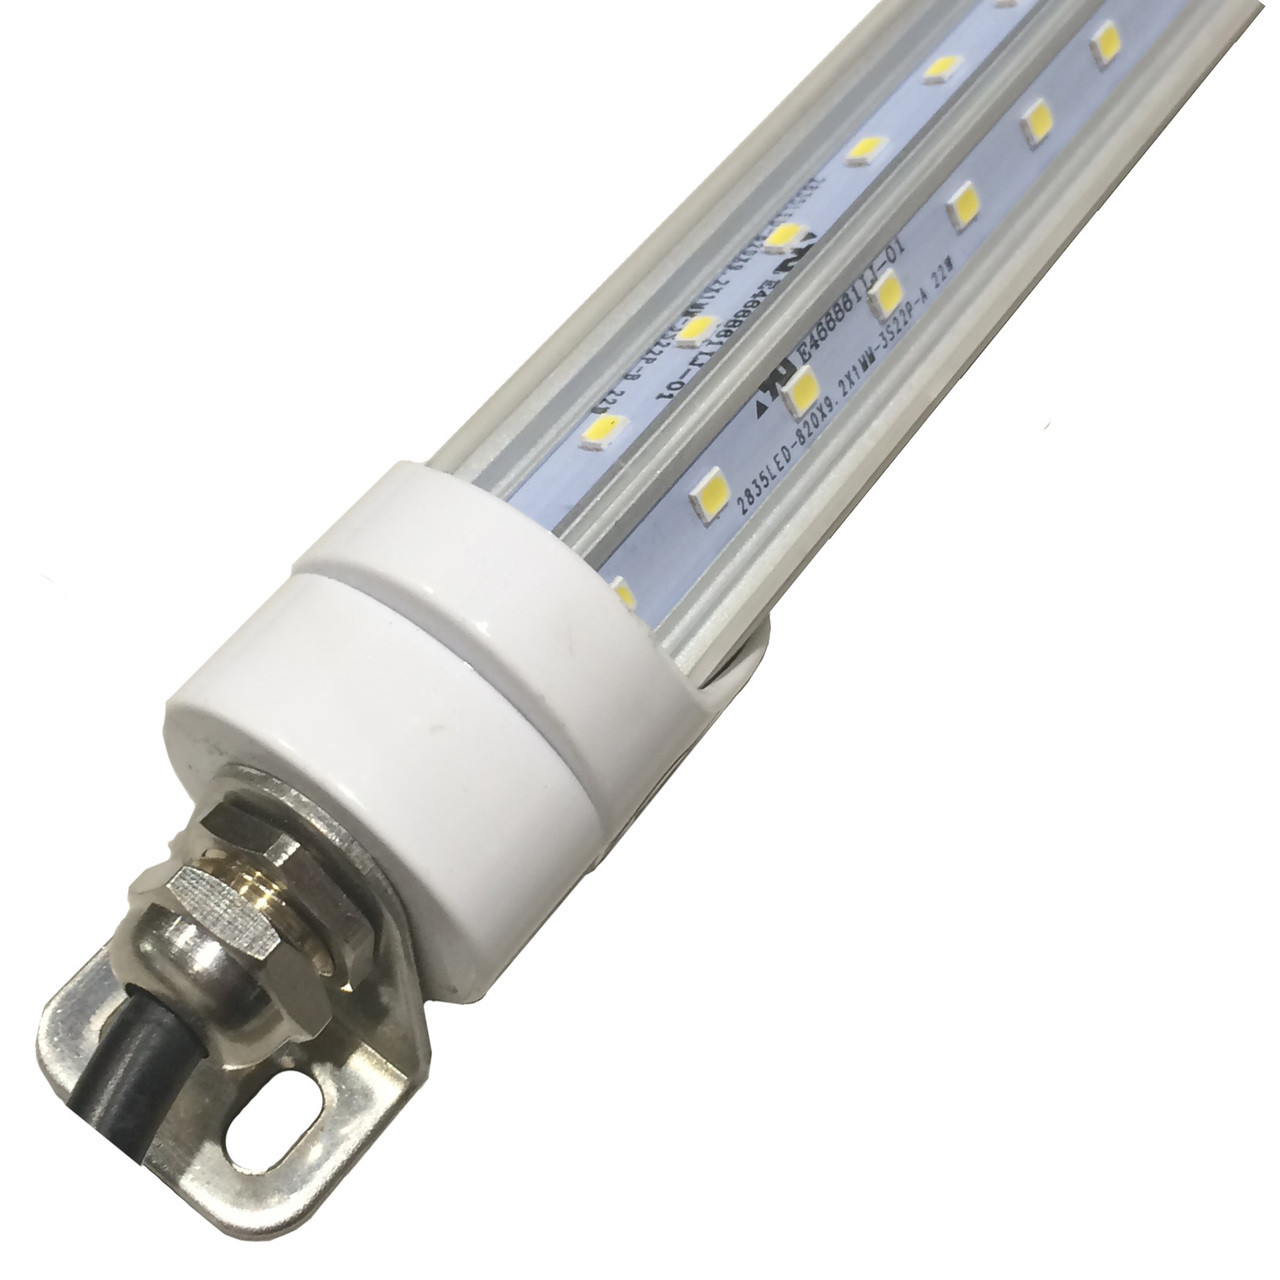 t8 led freezer cooler six foot tube to replace florescent s led wiring diagram for t8 6 bulb led light [ 1280 x 1280 Pixel ]